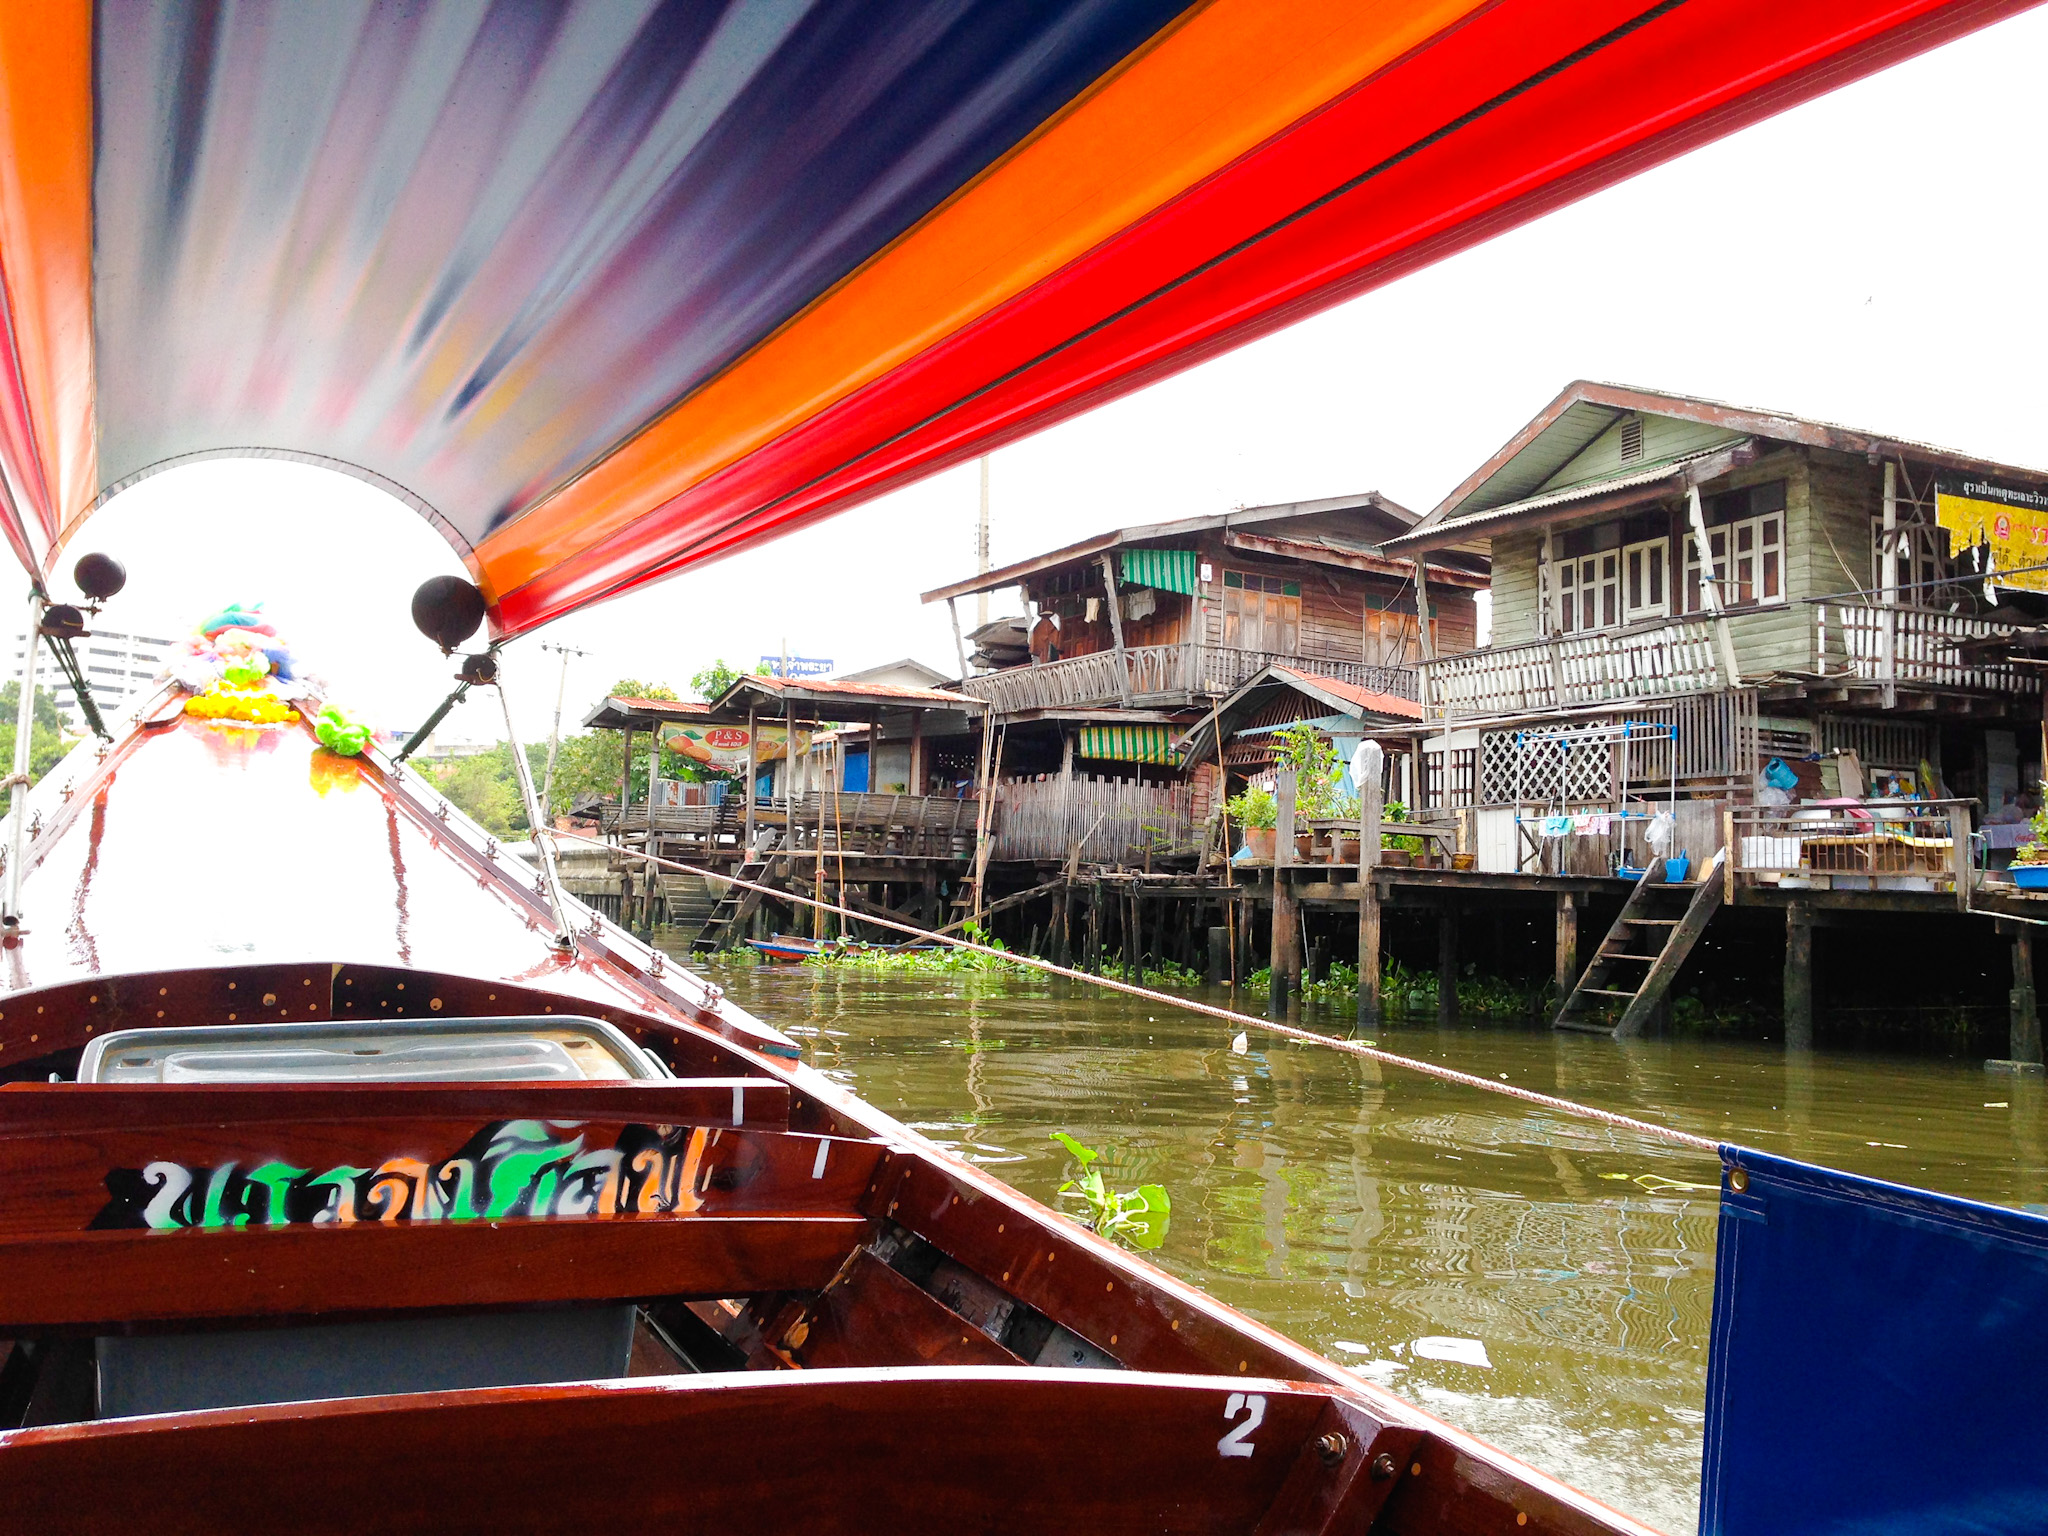 Exploring the Chao Phraya River by longtail boat in Bangkok